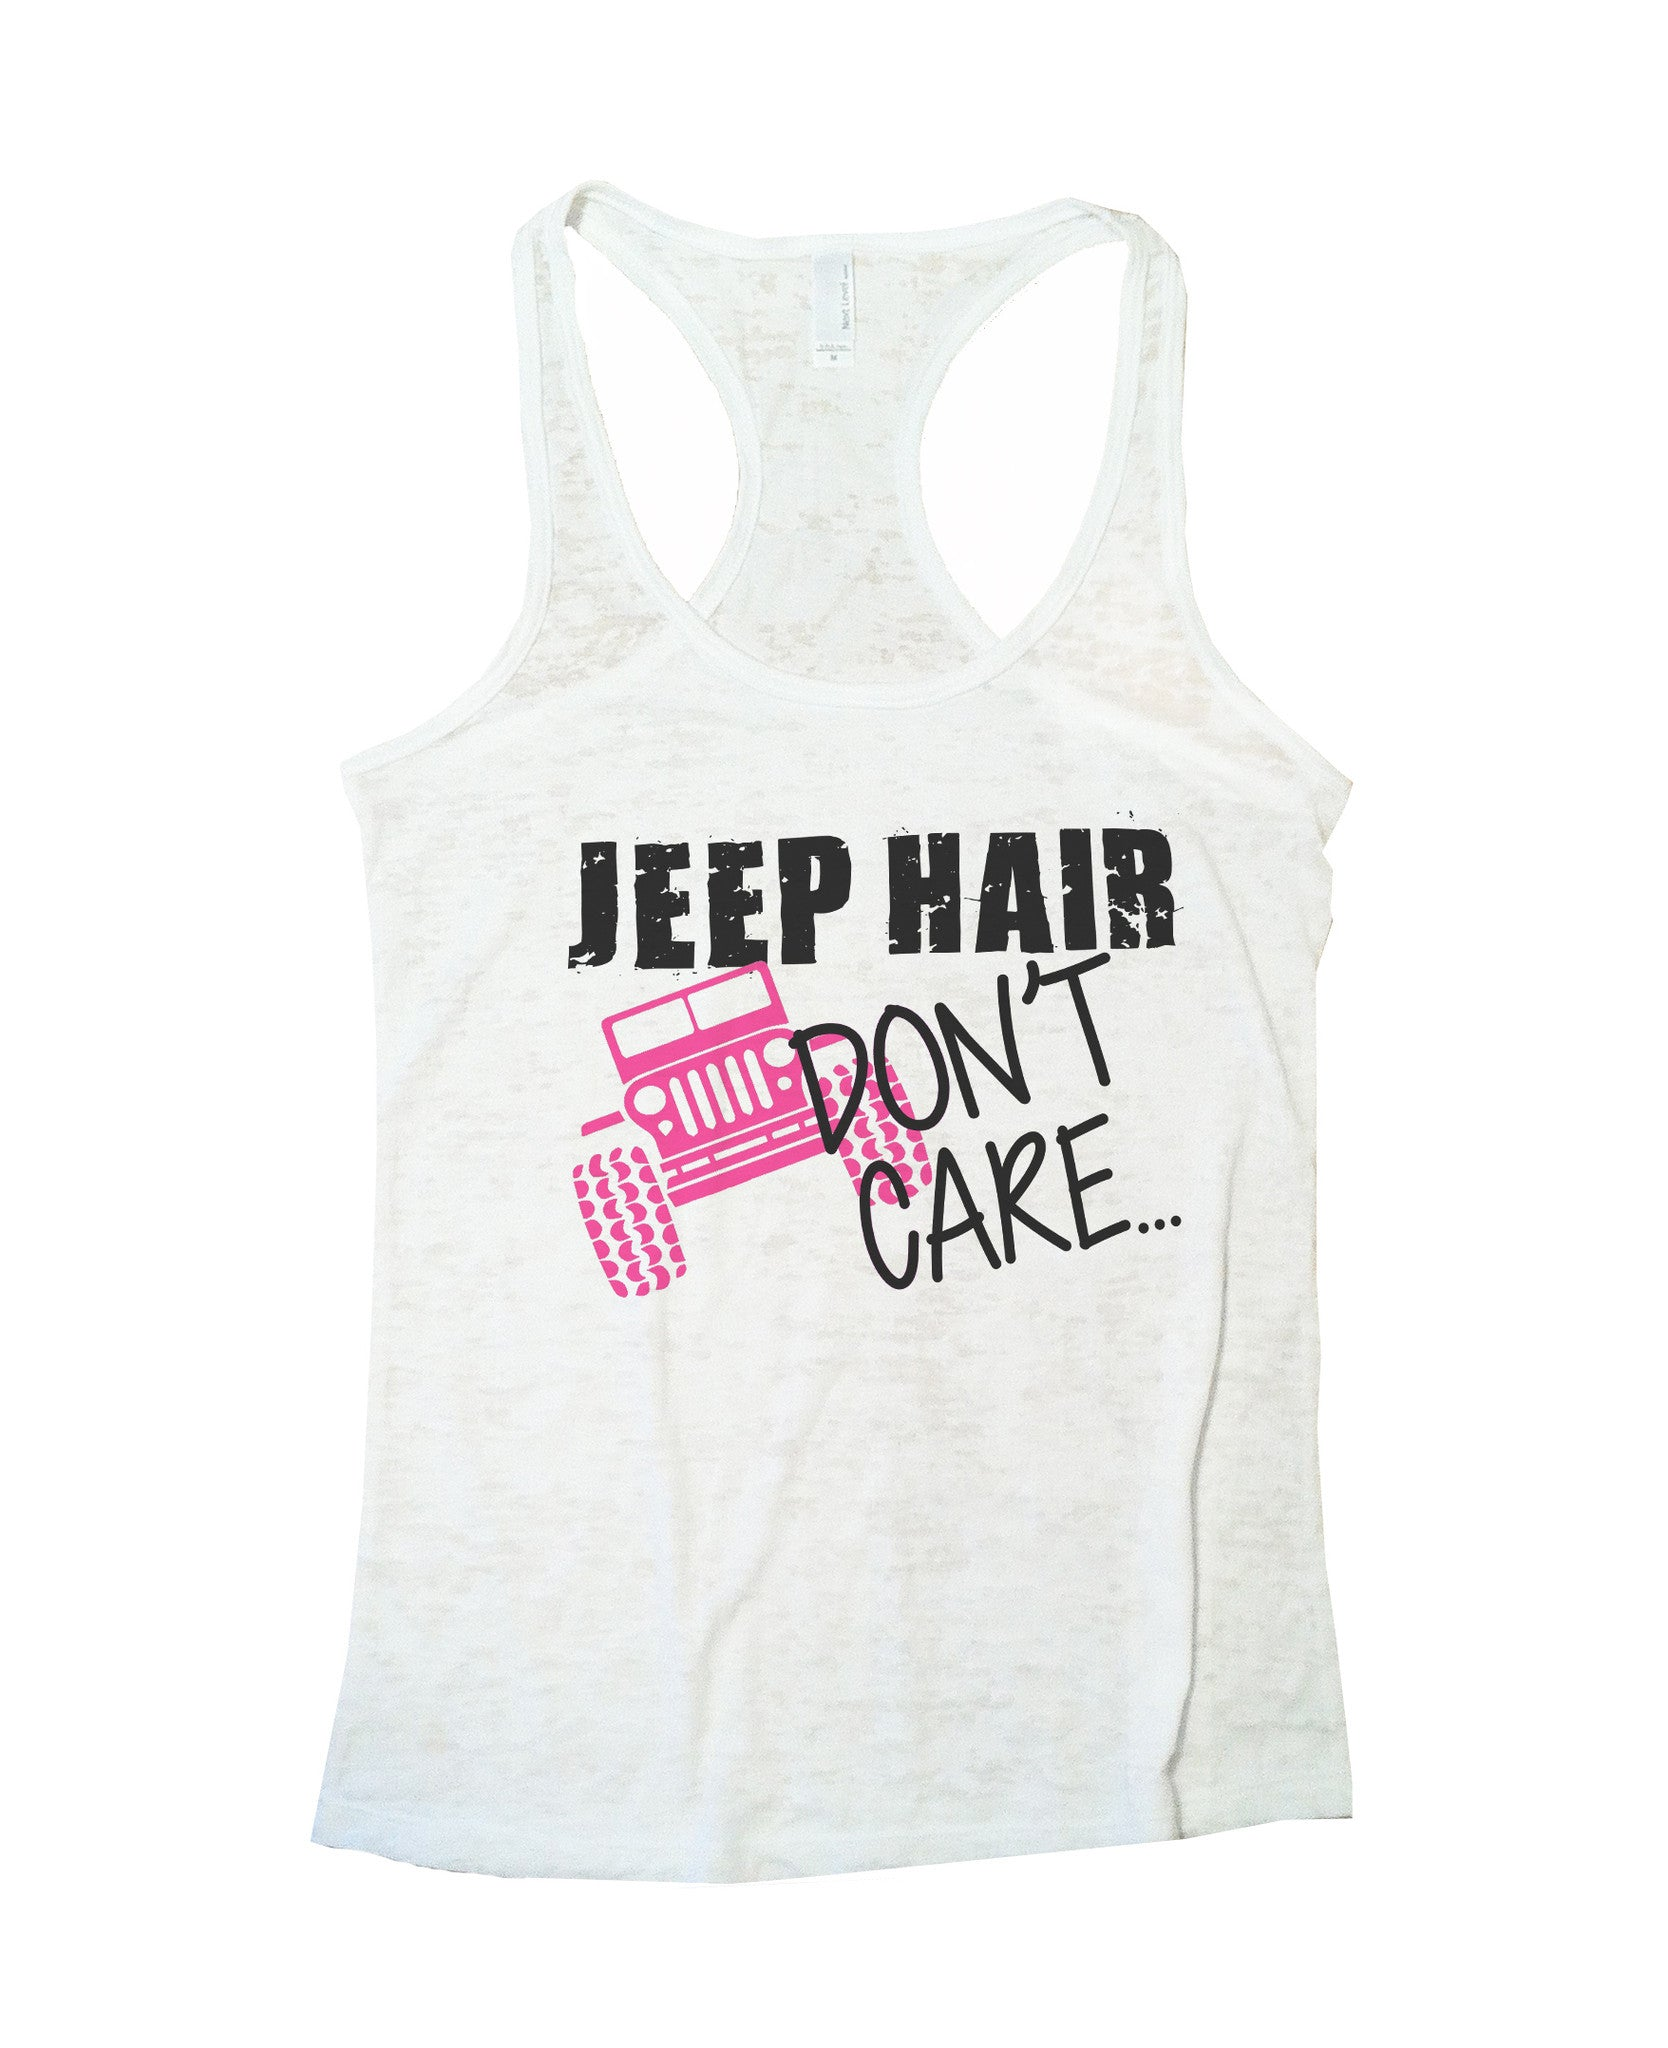 Jeep Hair Dont Care Jeep Lovers Tank Burnout Tank Top by BurnoutTankTops.com - 729 - Funny Shirts Tank Tops Burnouts and Triblends  - 5